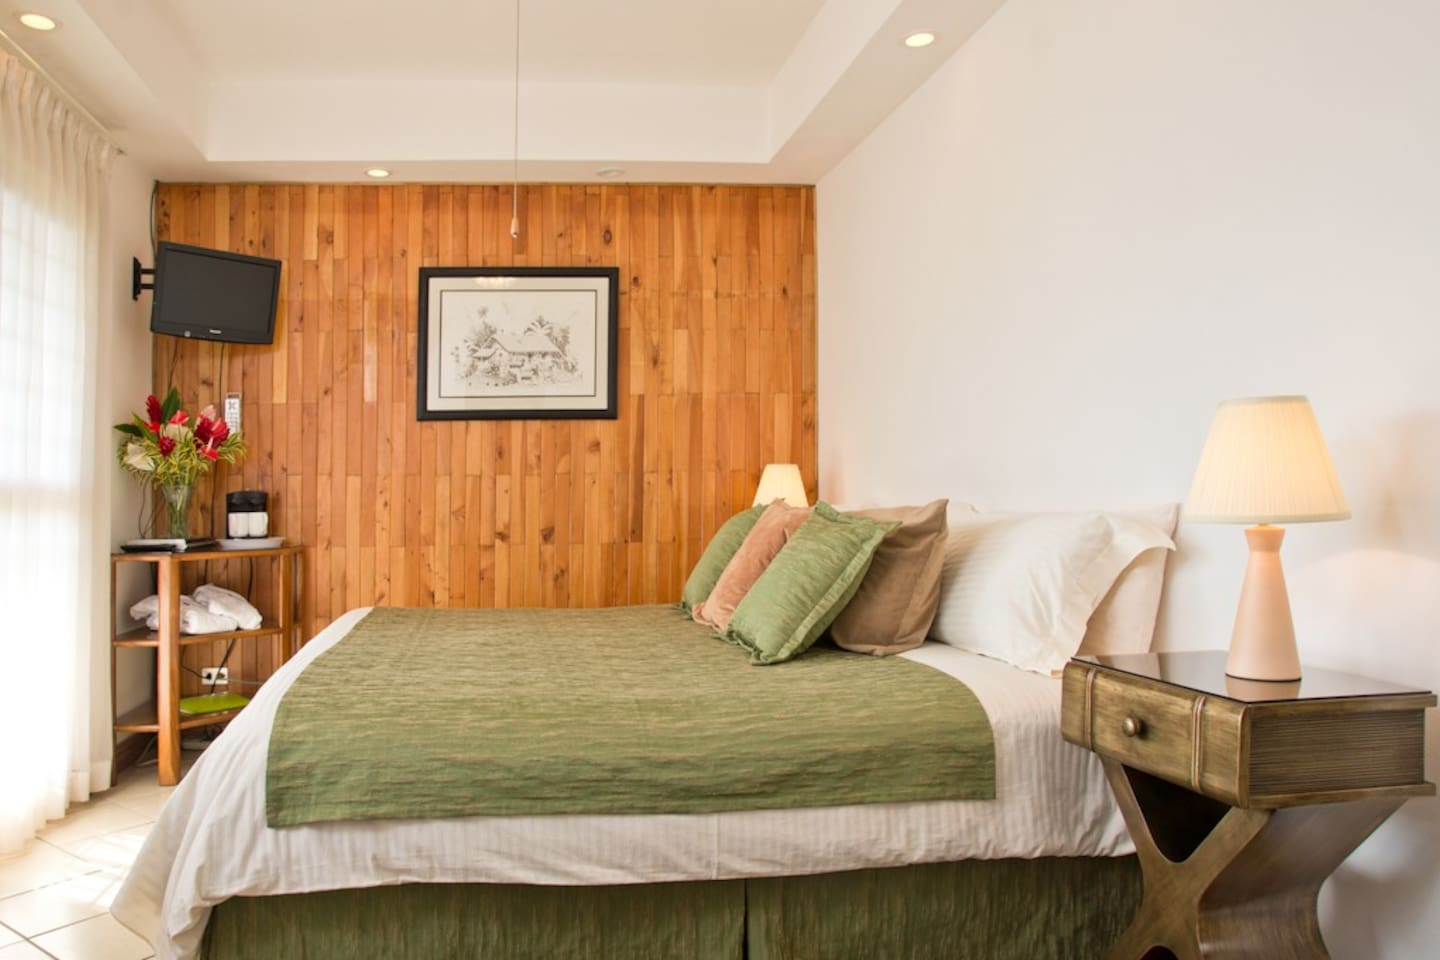 Superior room with private balcony, king size bed with memory foam and private bathroom